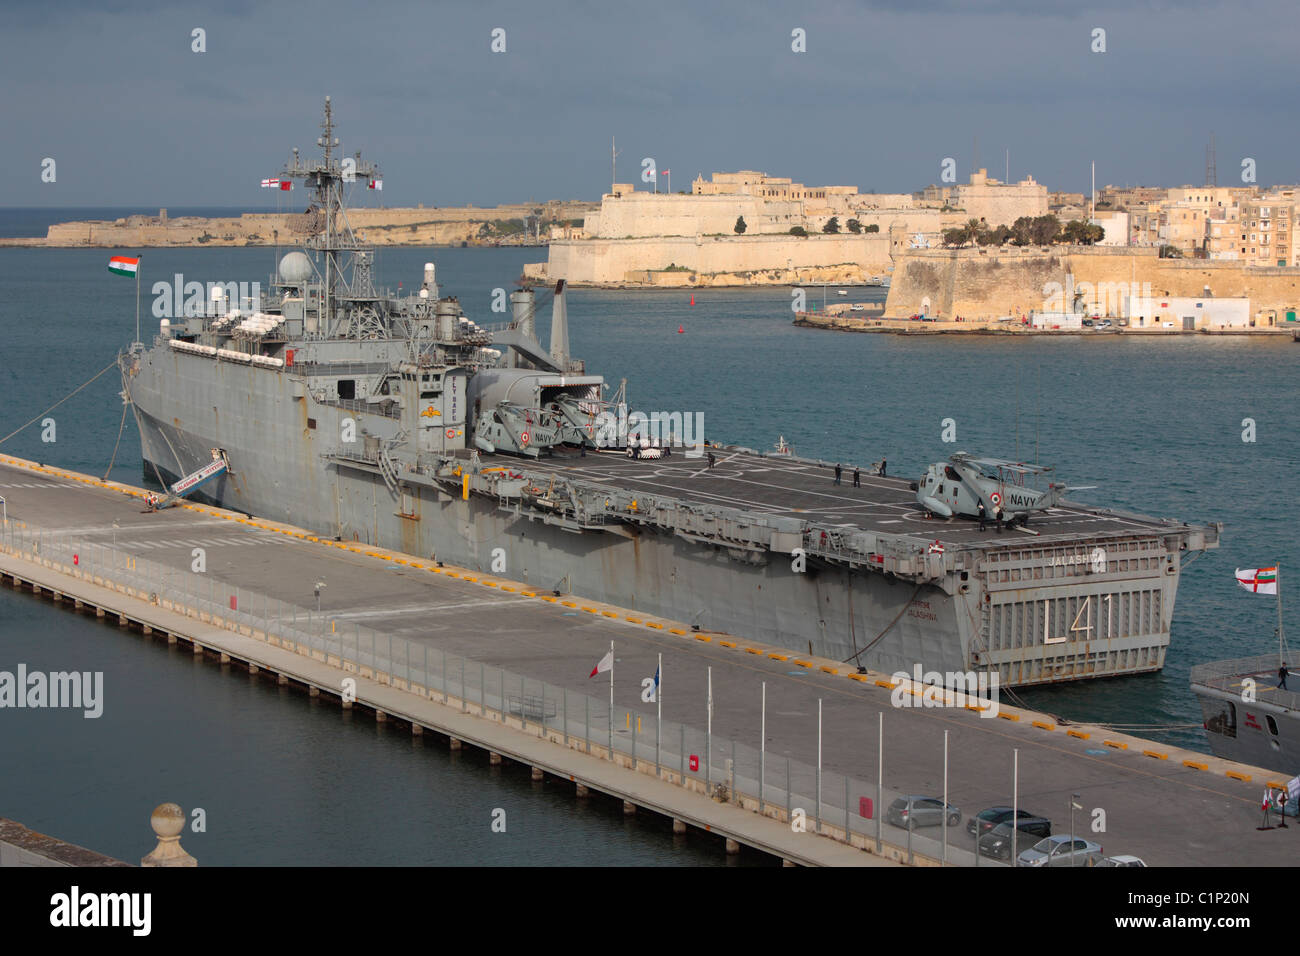 The Indian Navy ship INS Jalashwa in Malta after evacuating Indian nationals from Libya, 12 March 2011 - Stock Image